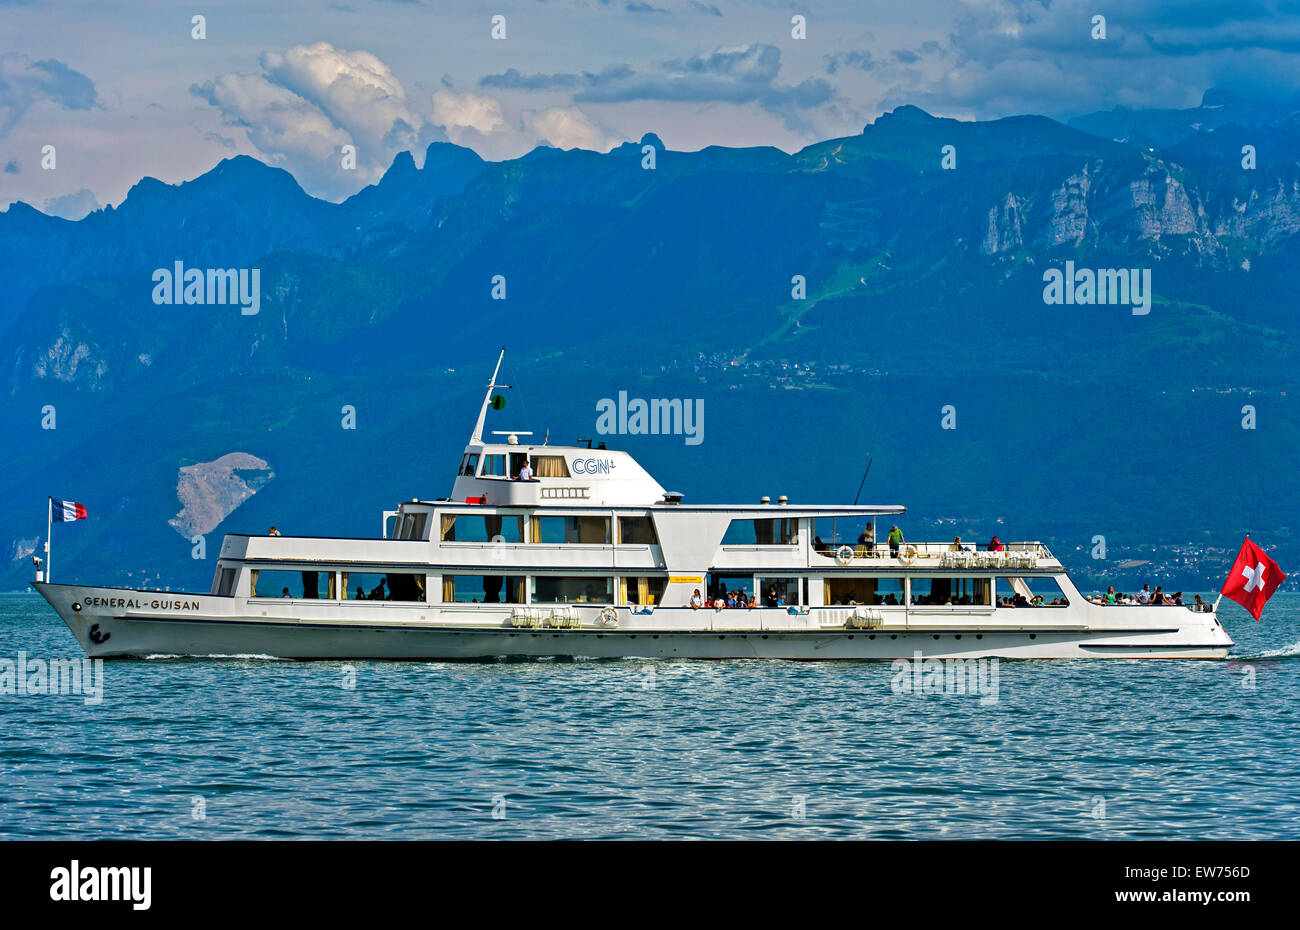 Motor boat Guisan of the company CGN cruising on Lake Geneva at the foot of the Vaud Alps, Morges, Vaud, Switzerland - Stock Image